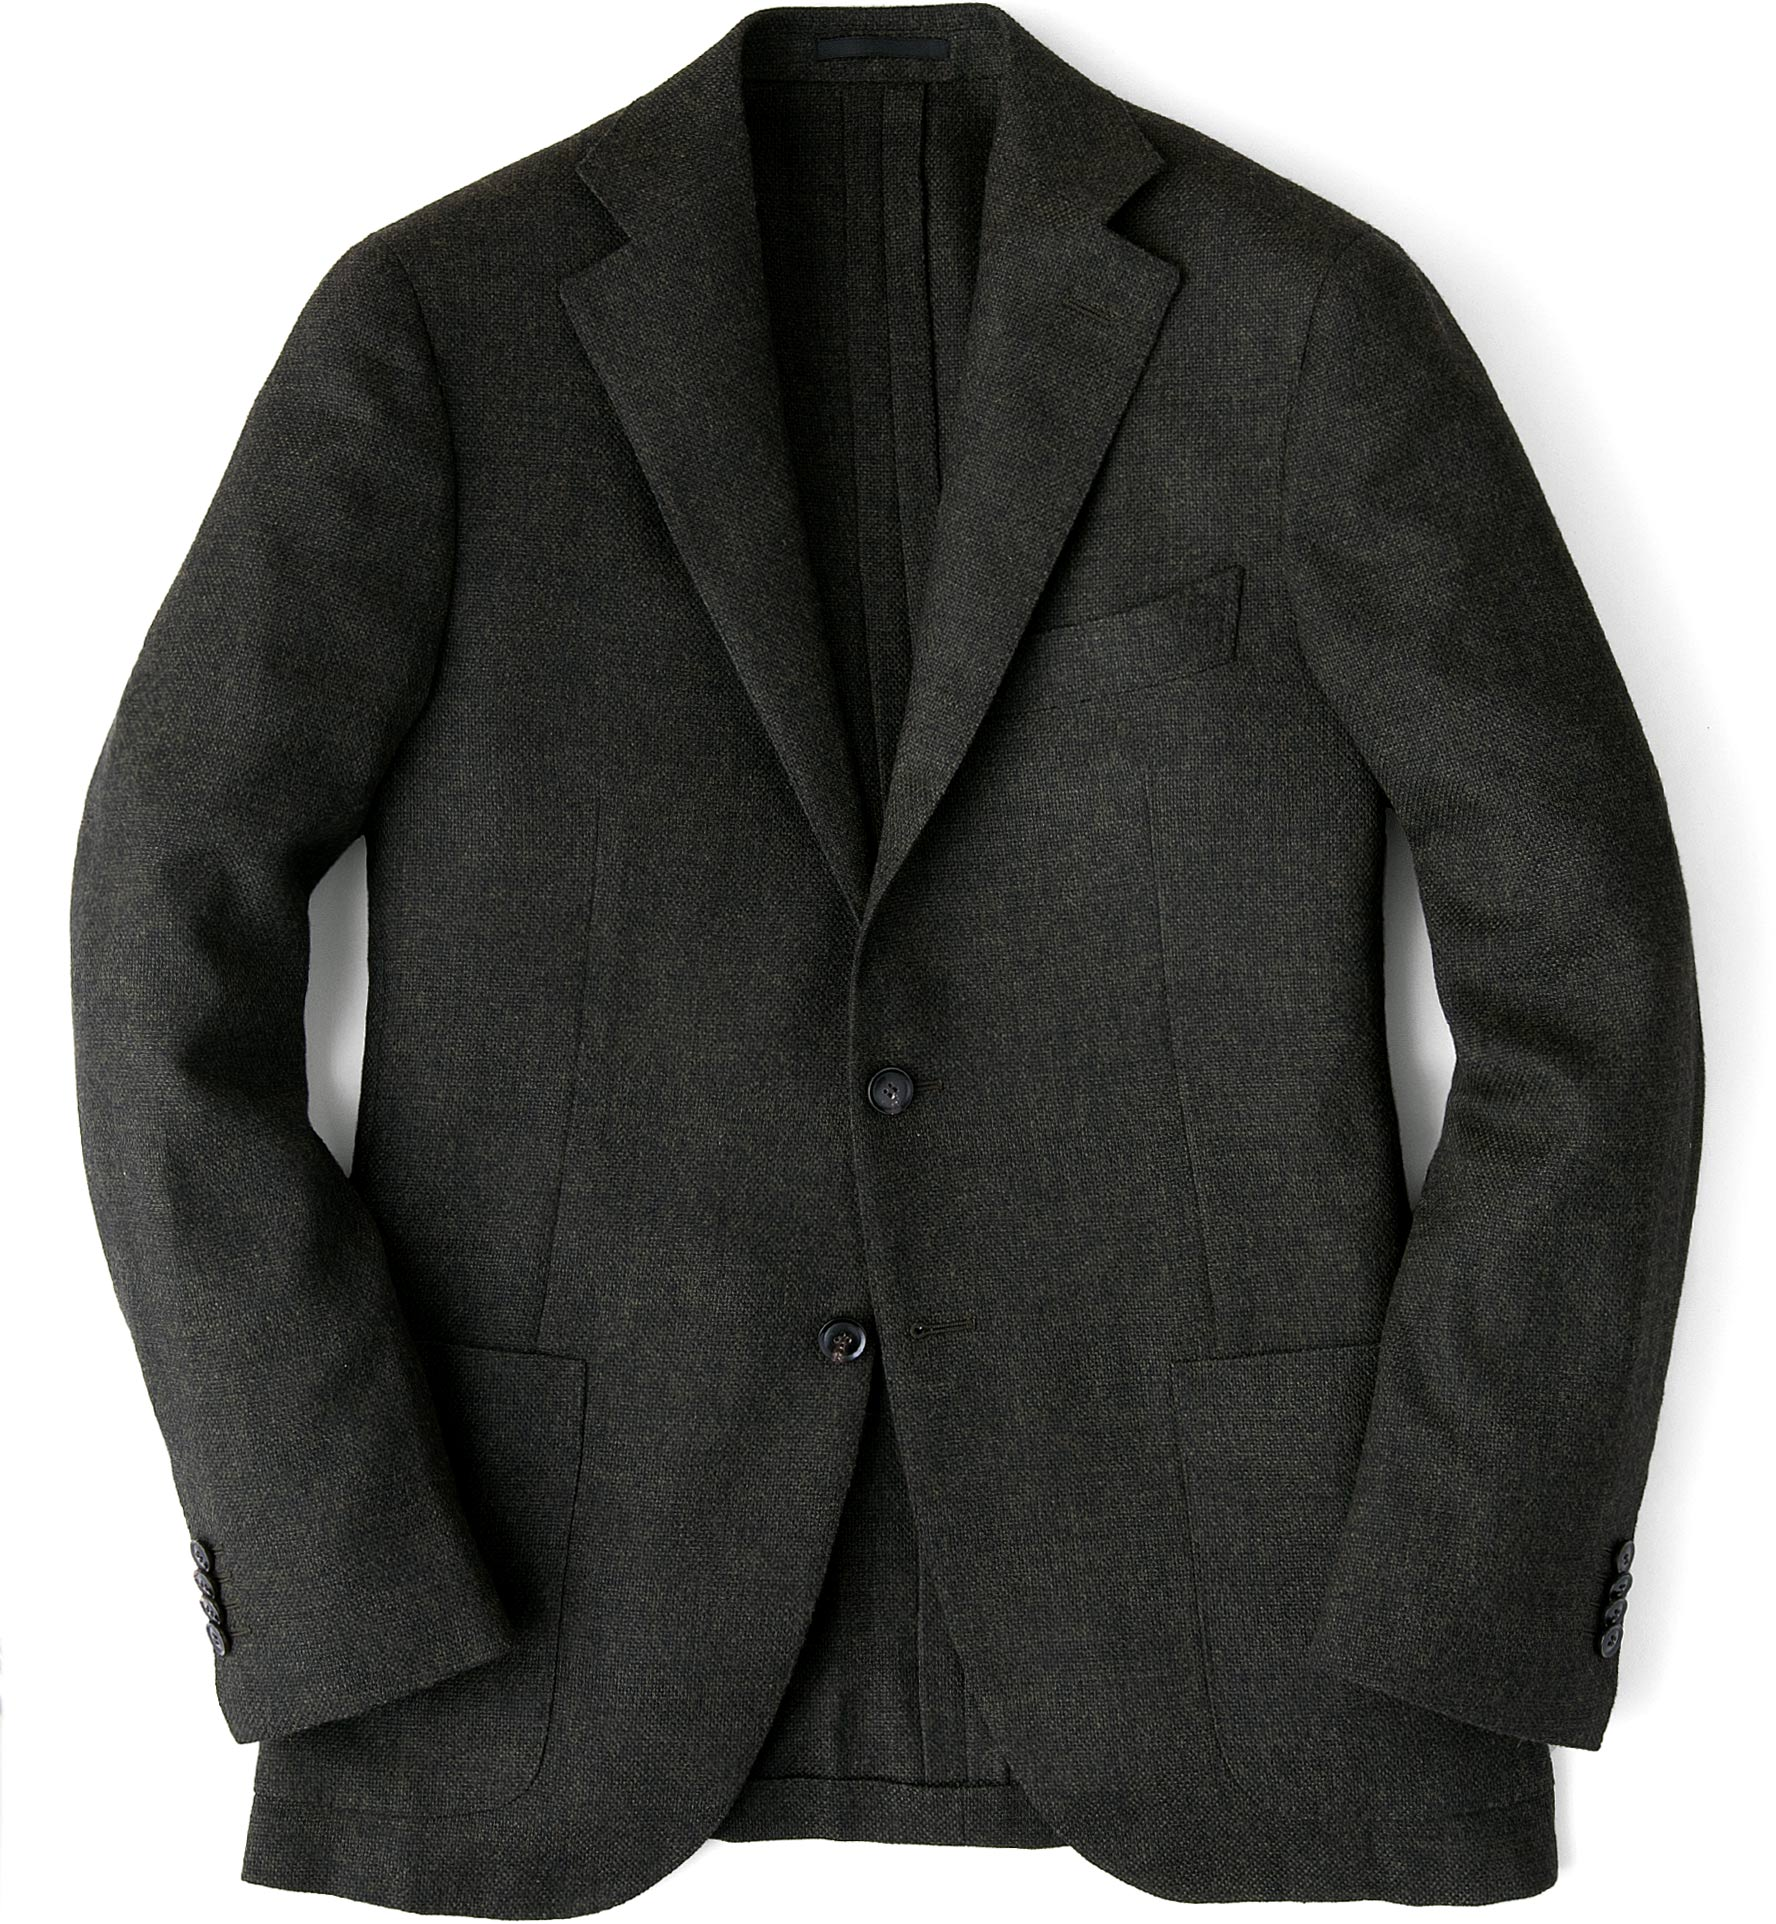 Zoom Image of Forest Wool Cashmere Basketweave Hudson Jacket